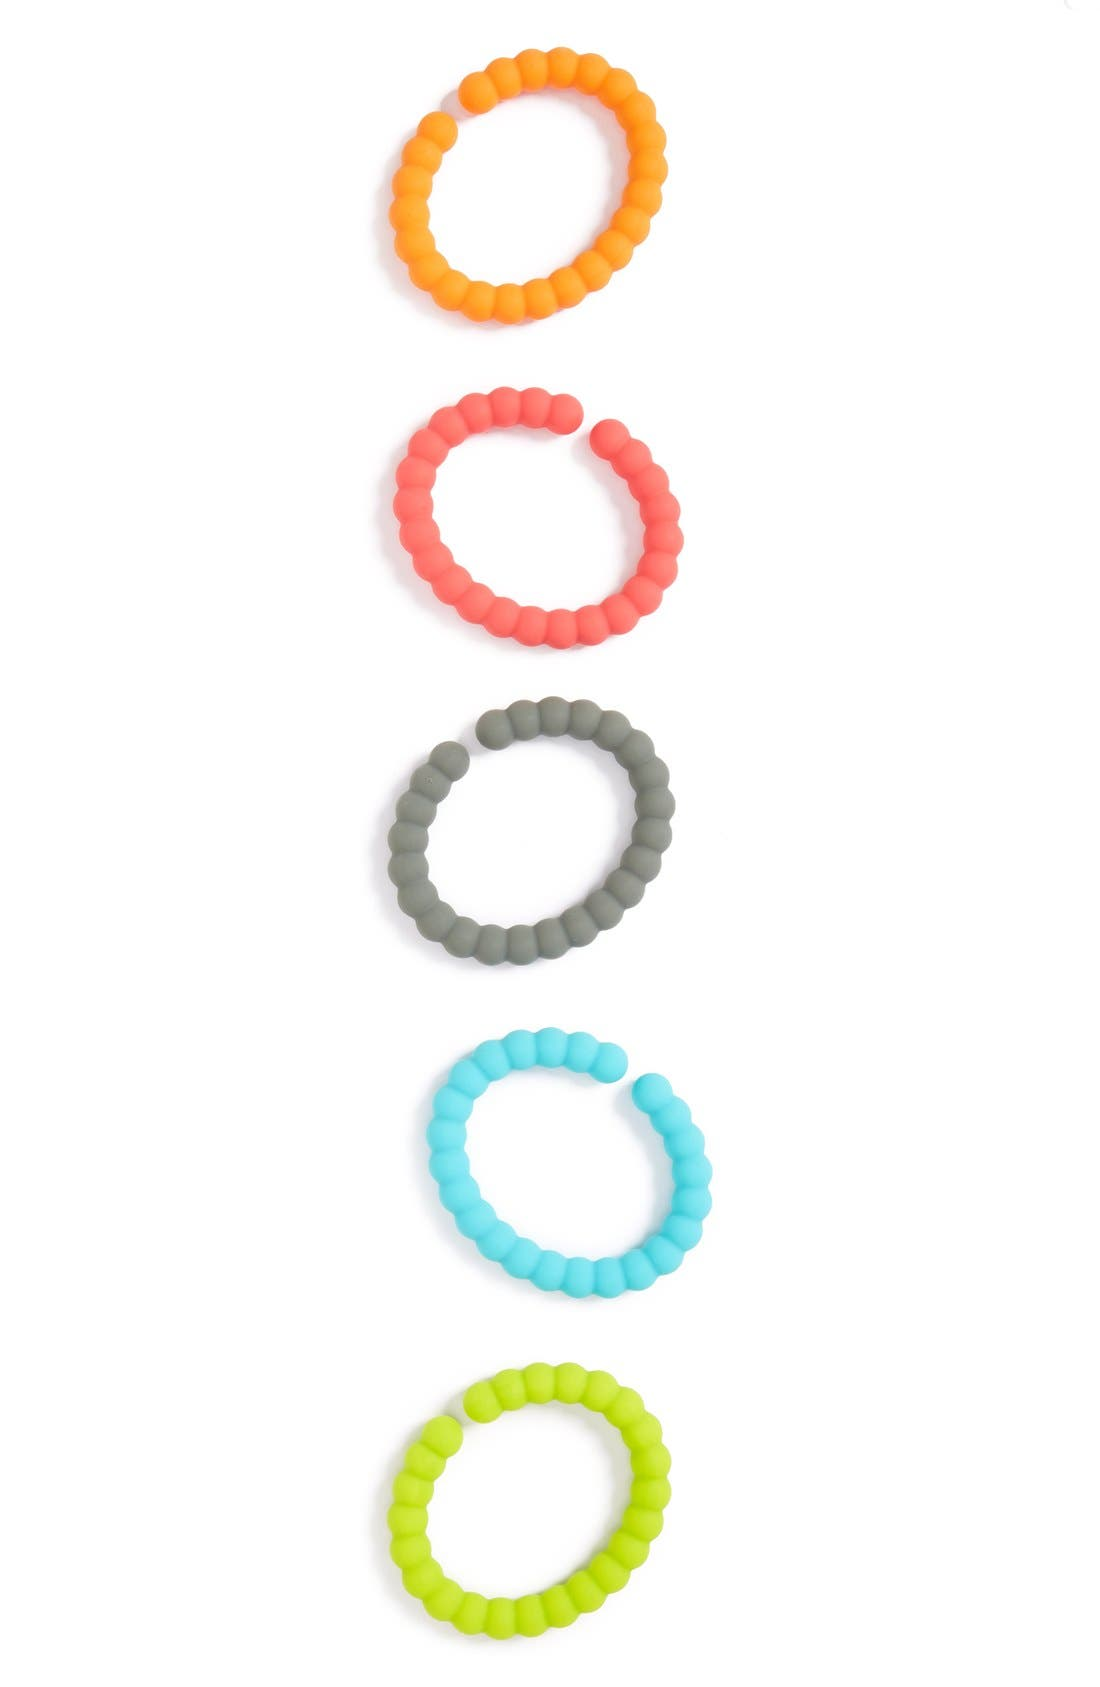 Main Image - Chewbeads 'CB GO' Silicone Chew Links